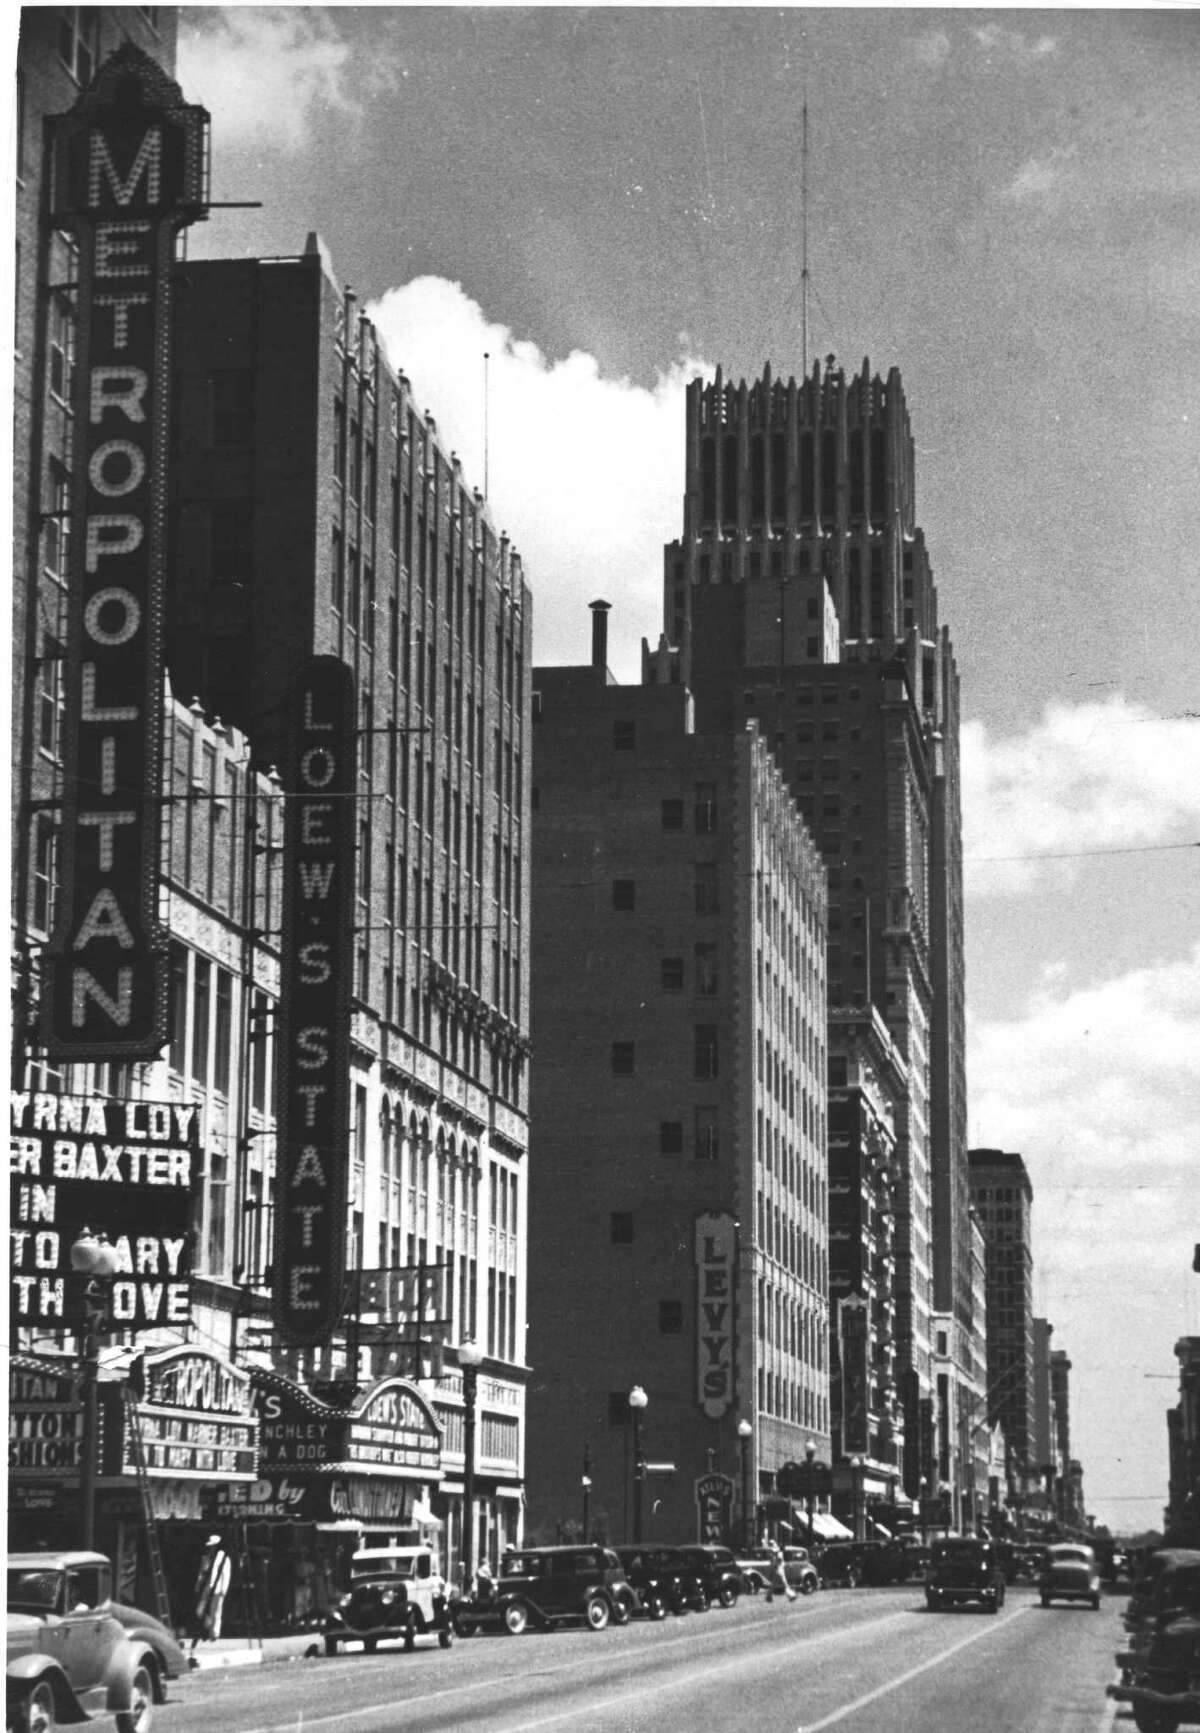 This picture shows a view of the movie theater district along Main Street looking north from Lamar in 1936. The Metropolitan Theater and Loew's State have